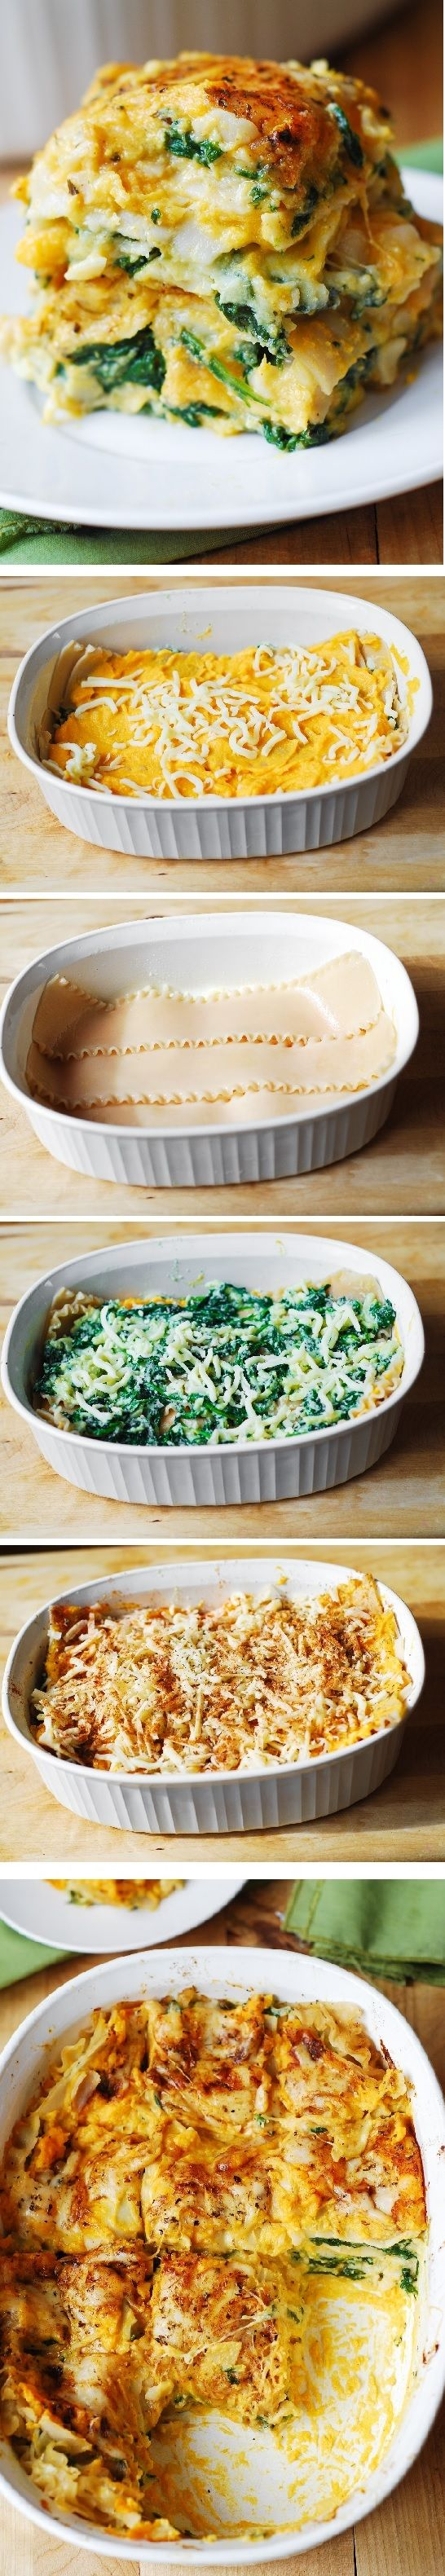 Butternut Squash and Spinach Three Cheese Lasagna combines amazing flavors to create the ultimate Fall & Winter comfort food. #healthy #vegetarian #pasta #dinner (For gluten free version, use Tinkyada brown rice lasagna noodles)